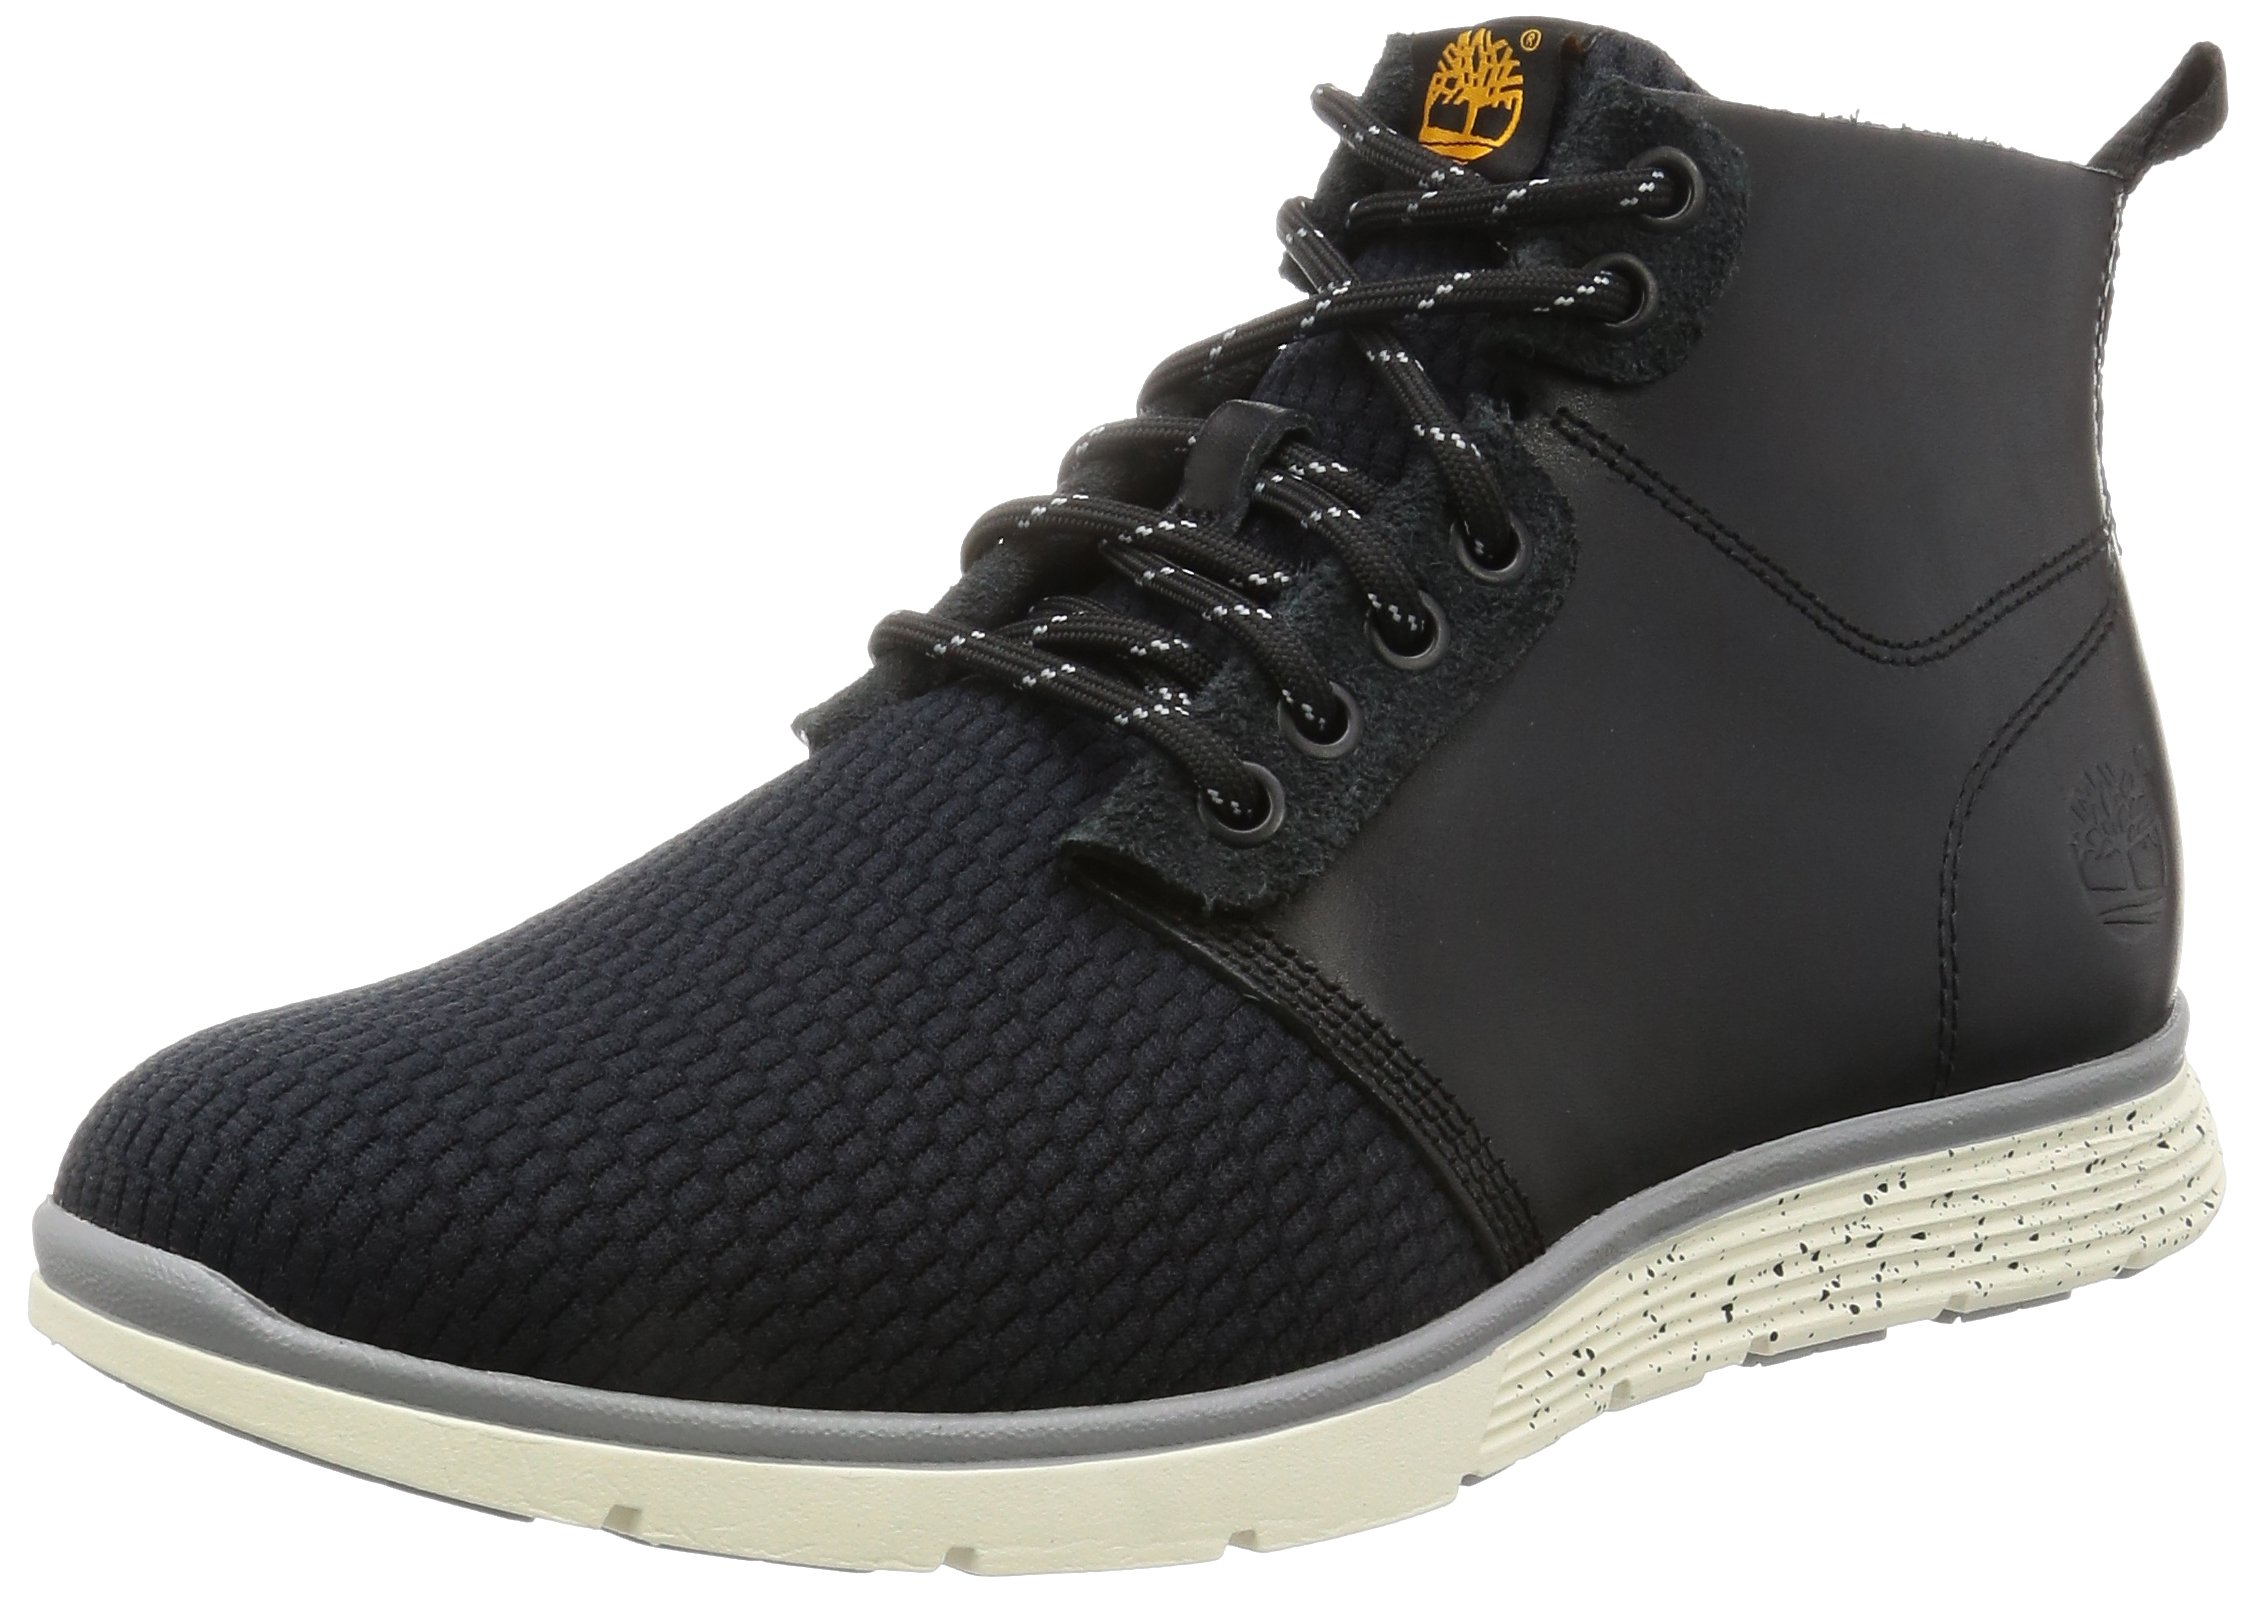 96dbe10fa Best Rated in Men s Chukka Boots   Helpful Customer Reviews - Amazon.com